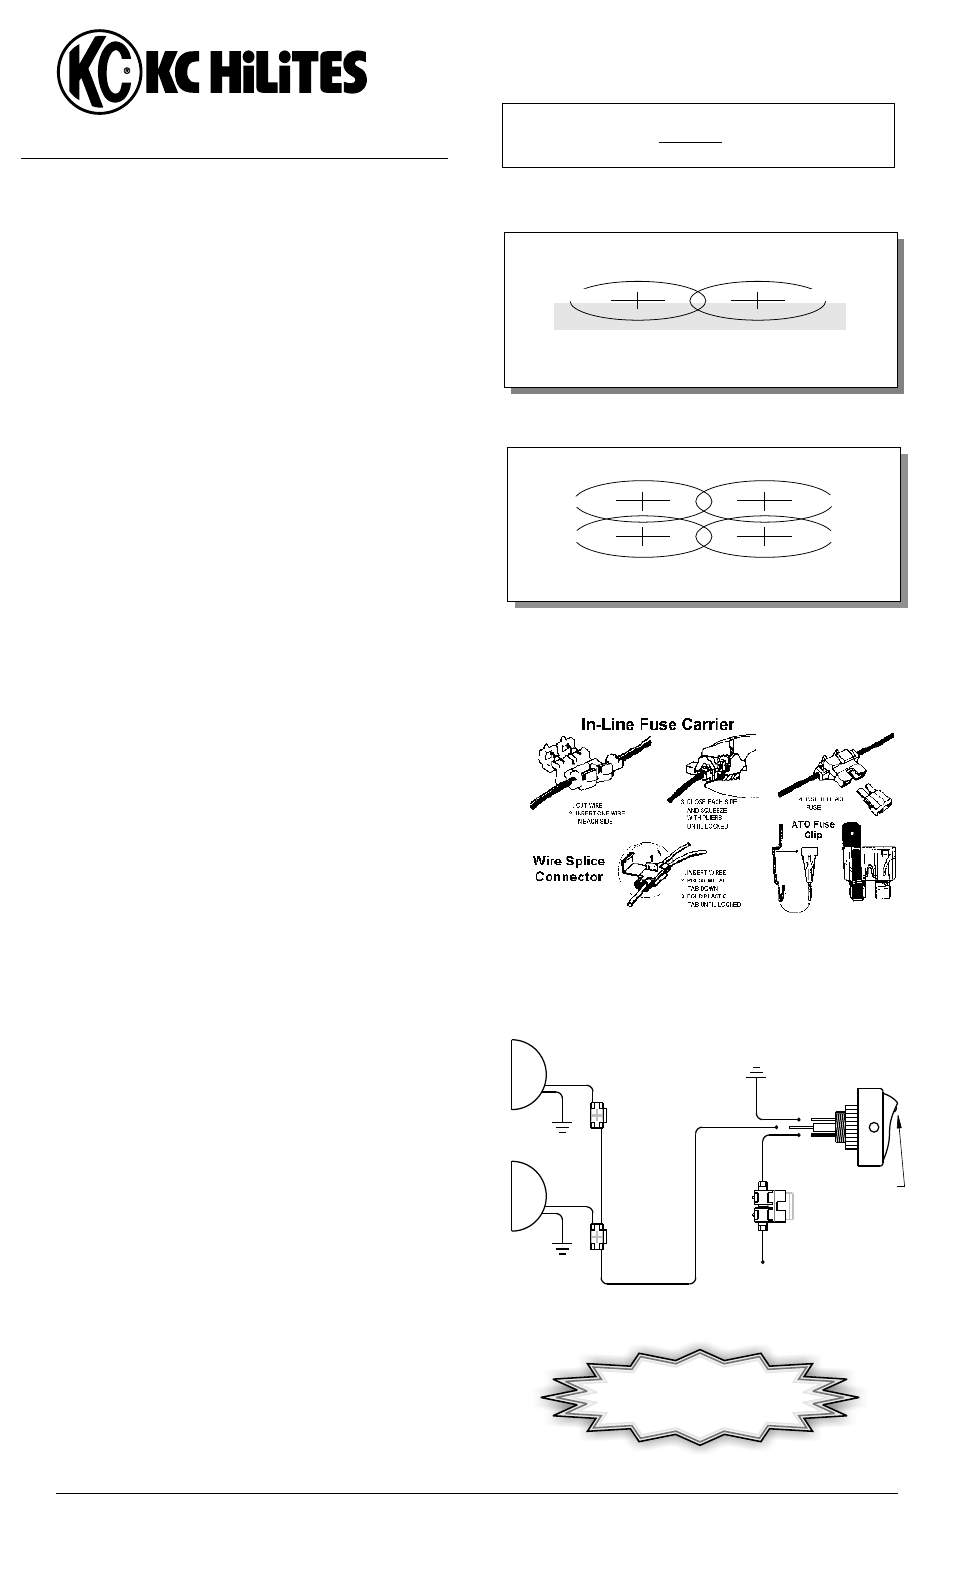 1985 F150 Ignition Module Wiring Schematic Great Design Of 1997 Diagram 81 Duraspark Circuit Maker 2006 Ford F 150 2004